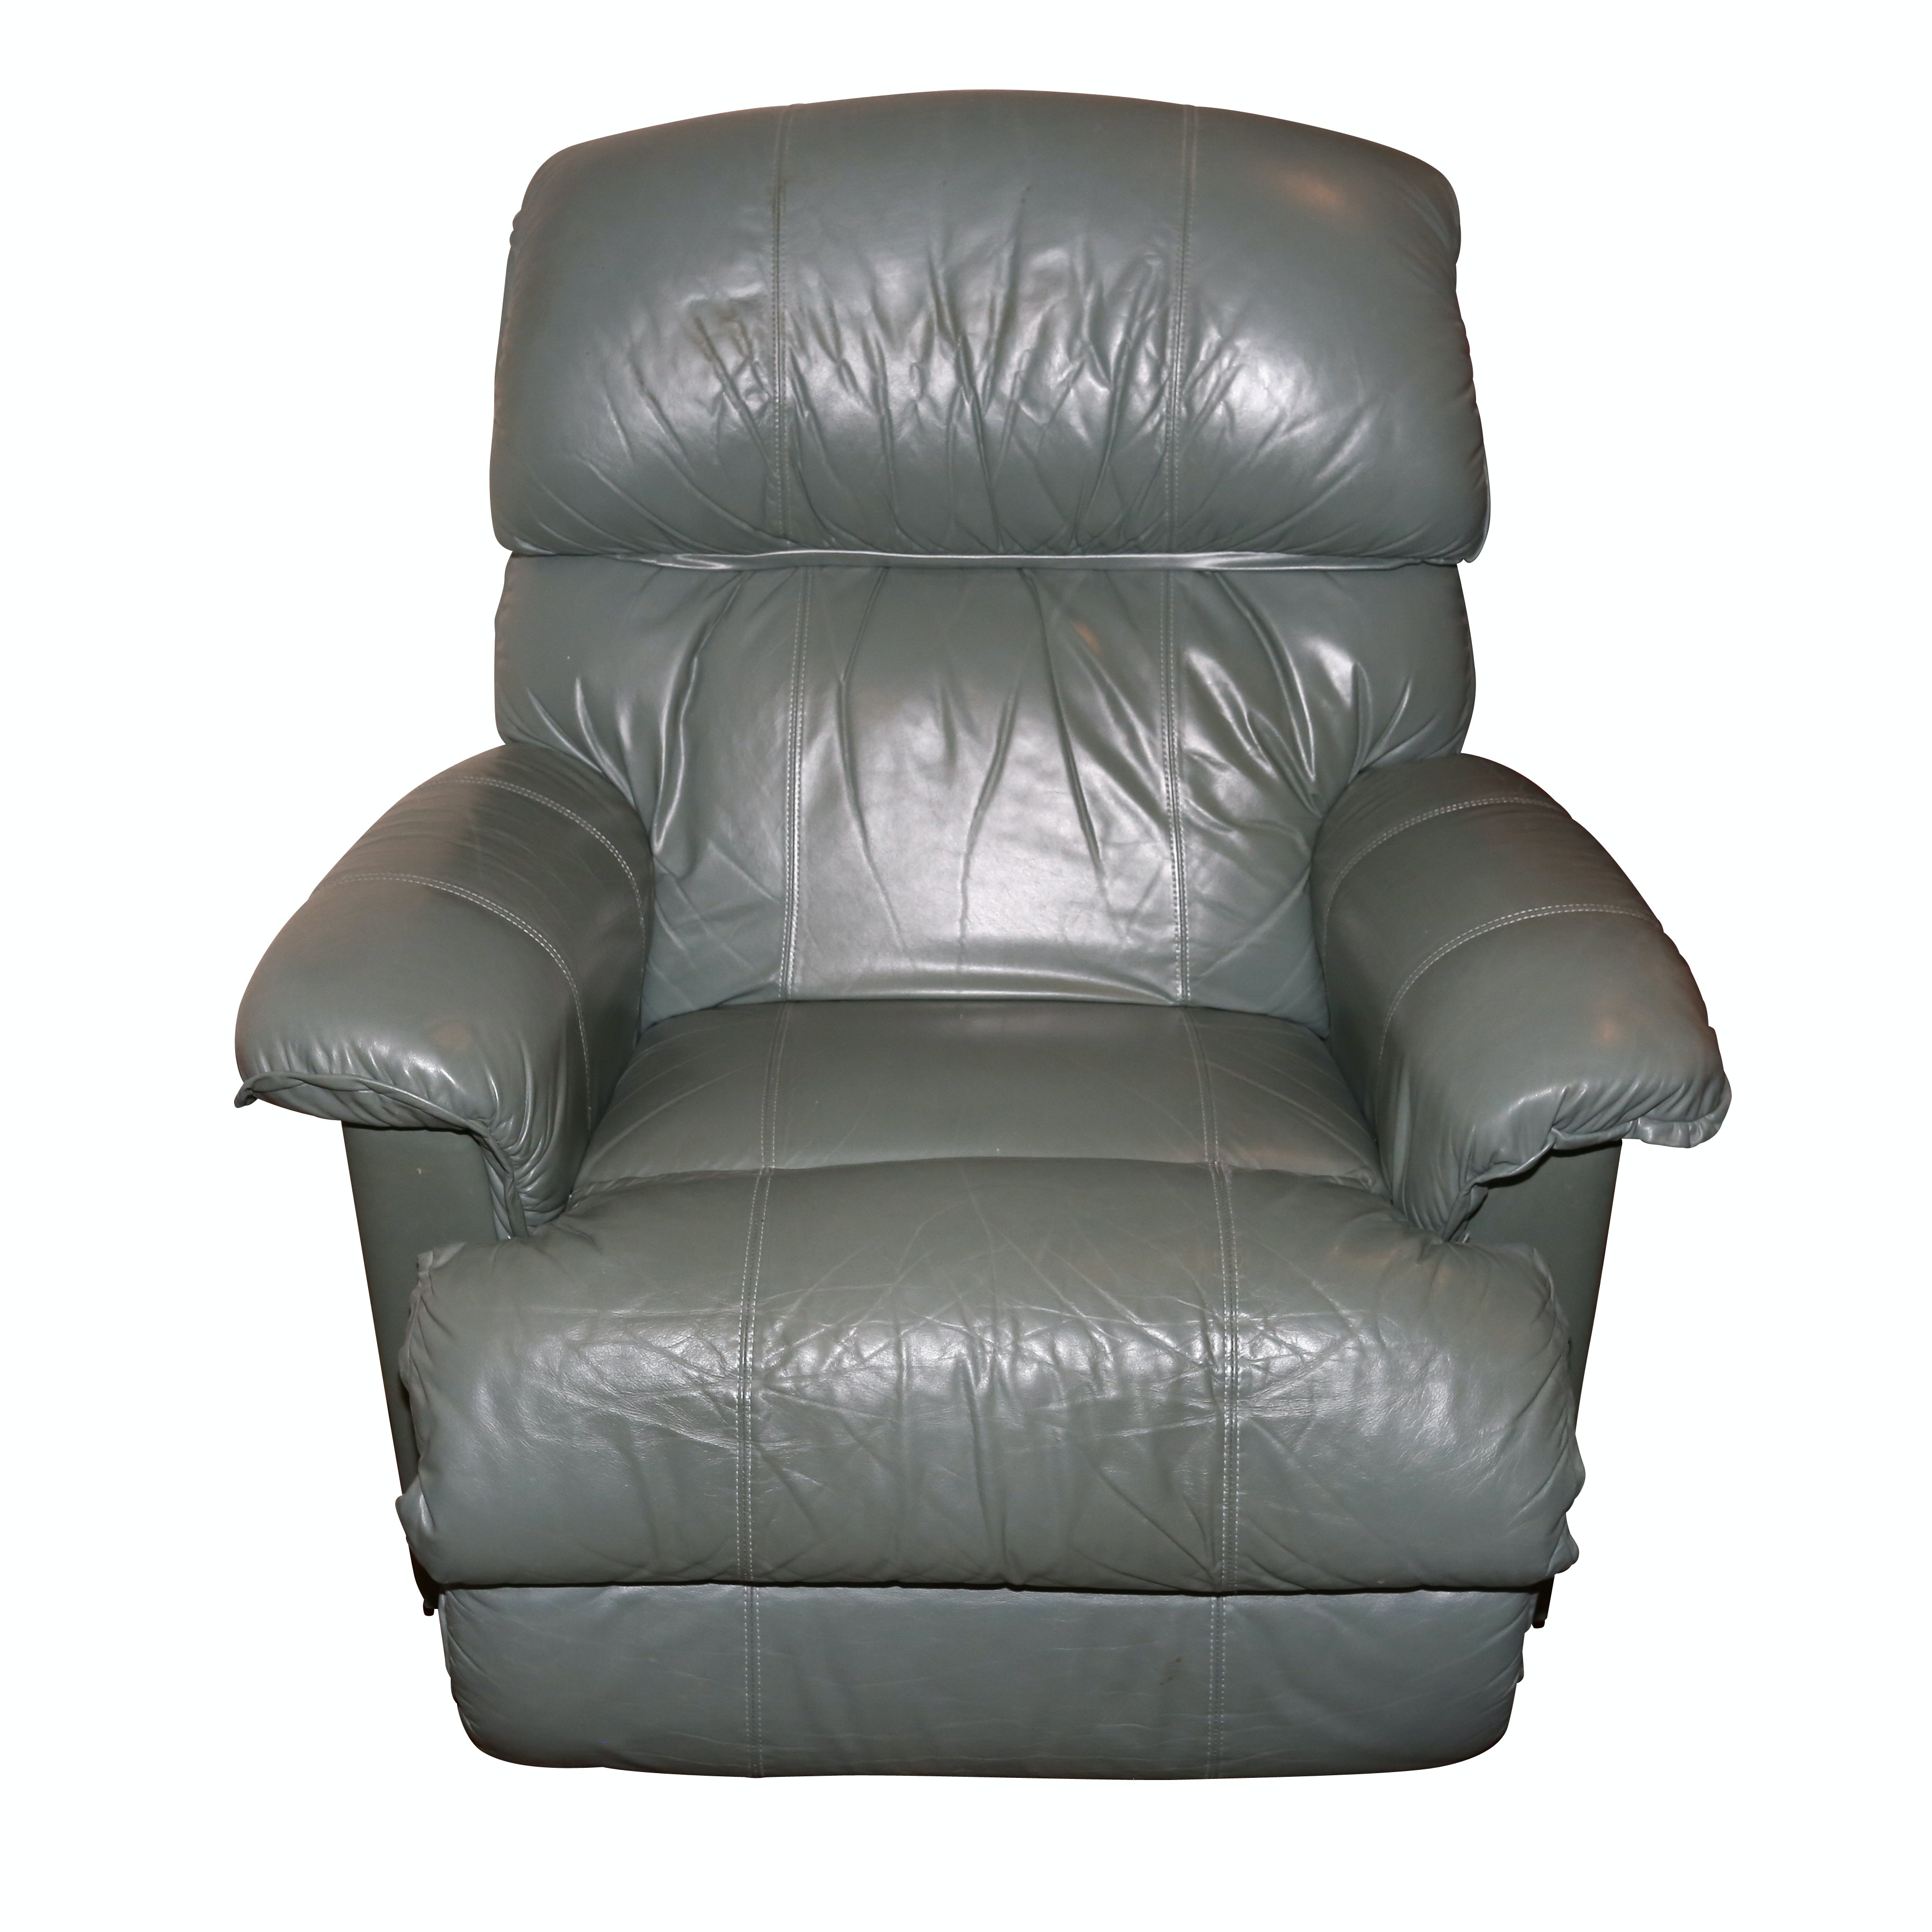 Leather Upholstered La-Z-Boy Manual Recliner, Late 20th Century